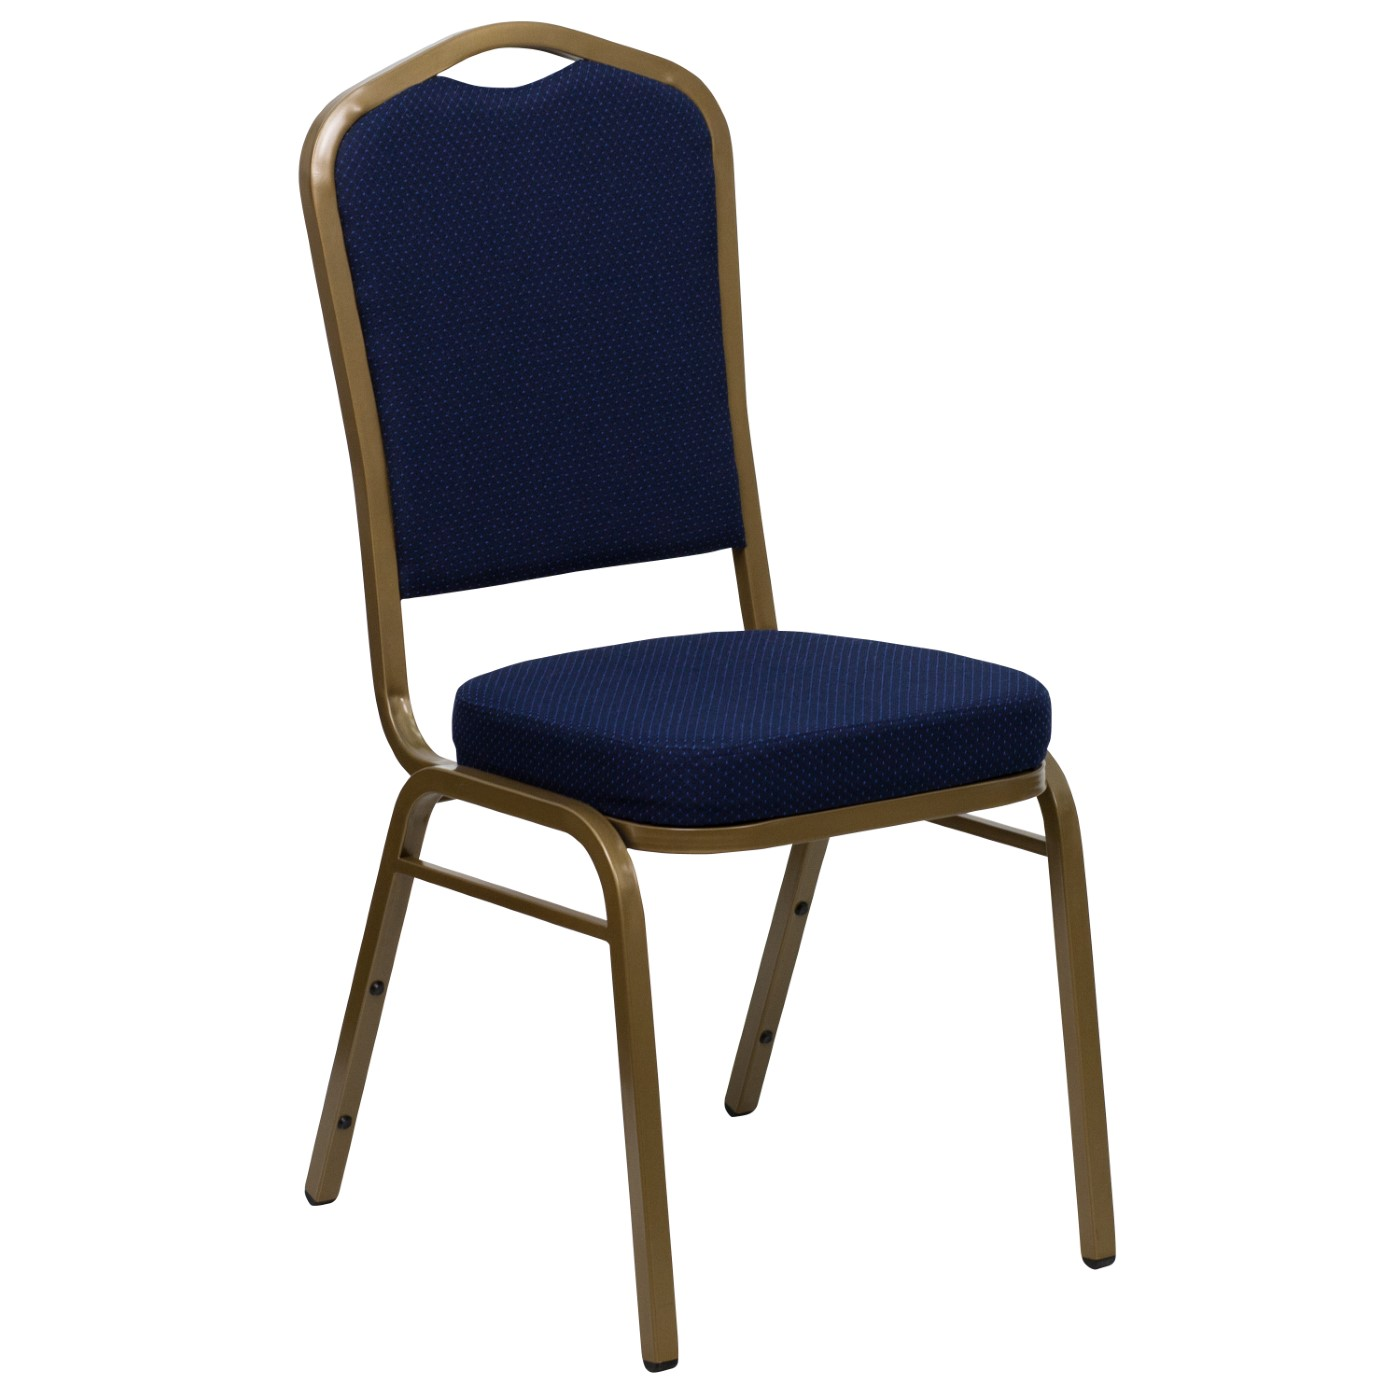 TOUGH ENOUGH Series Crown Back Stacking Banquet Chair in Navy Blue Patterned Fabric - Gold Frame